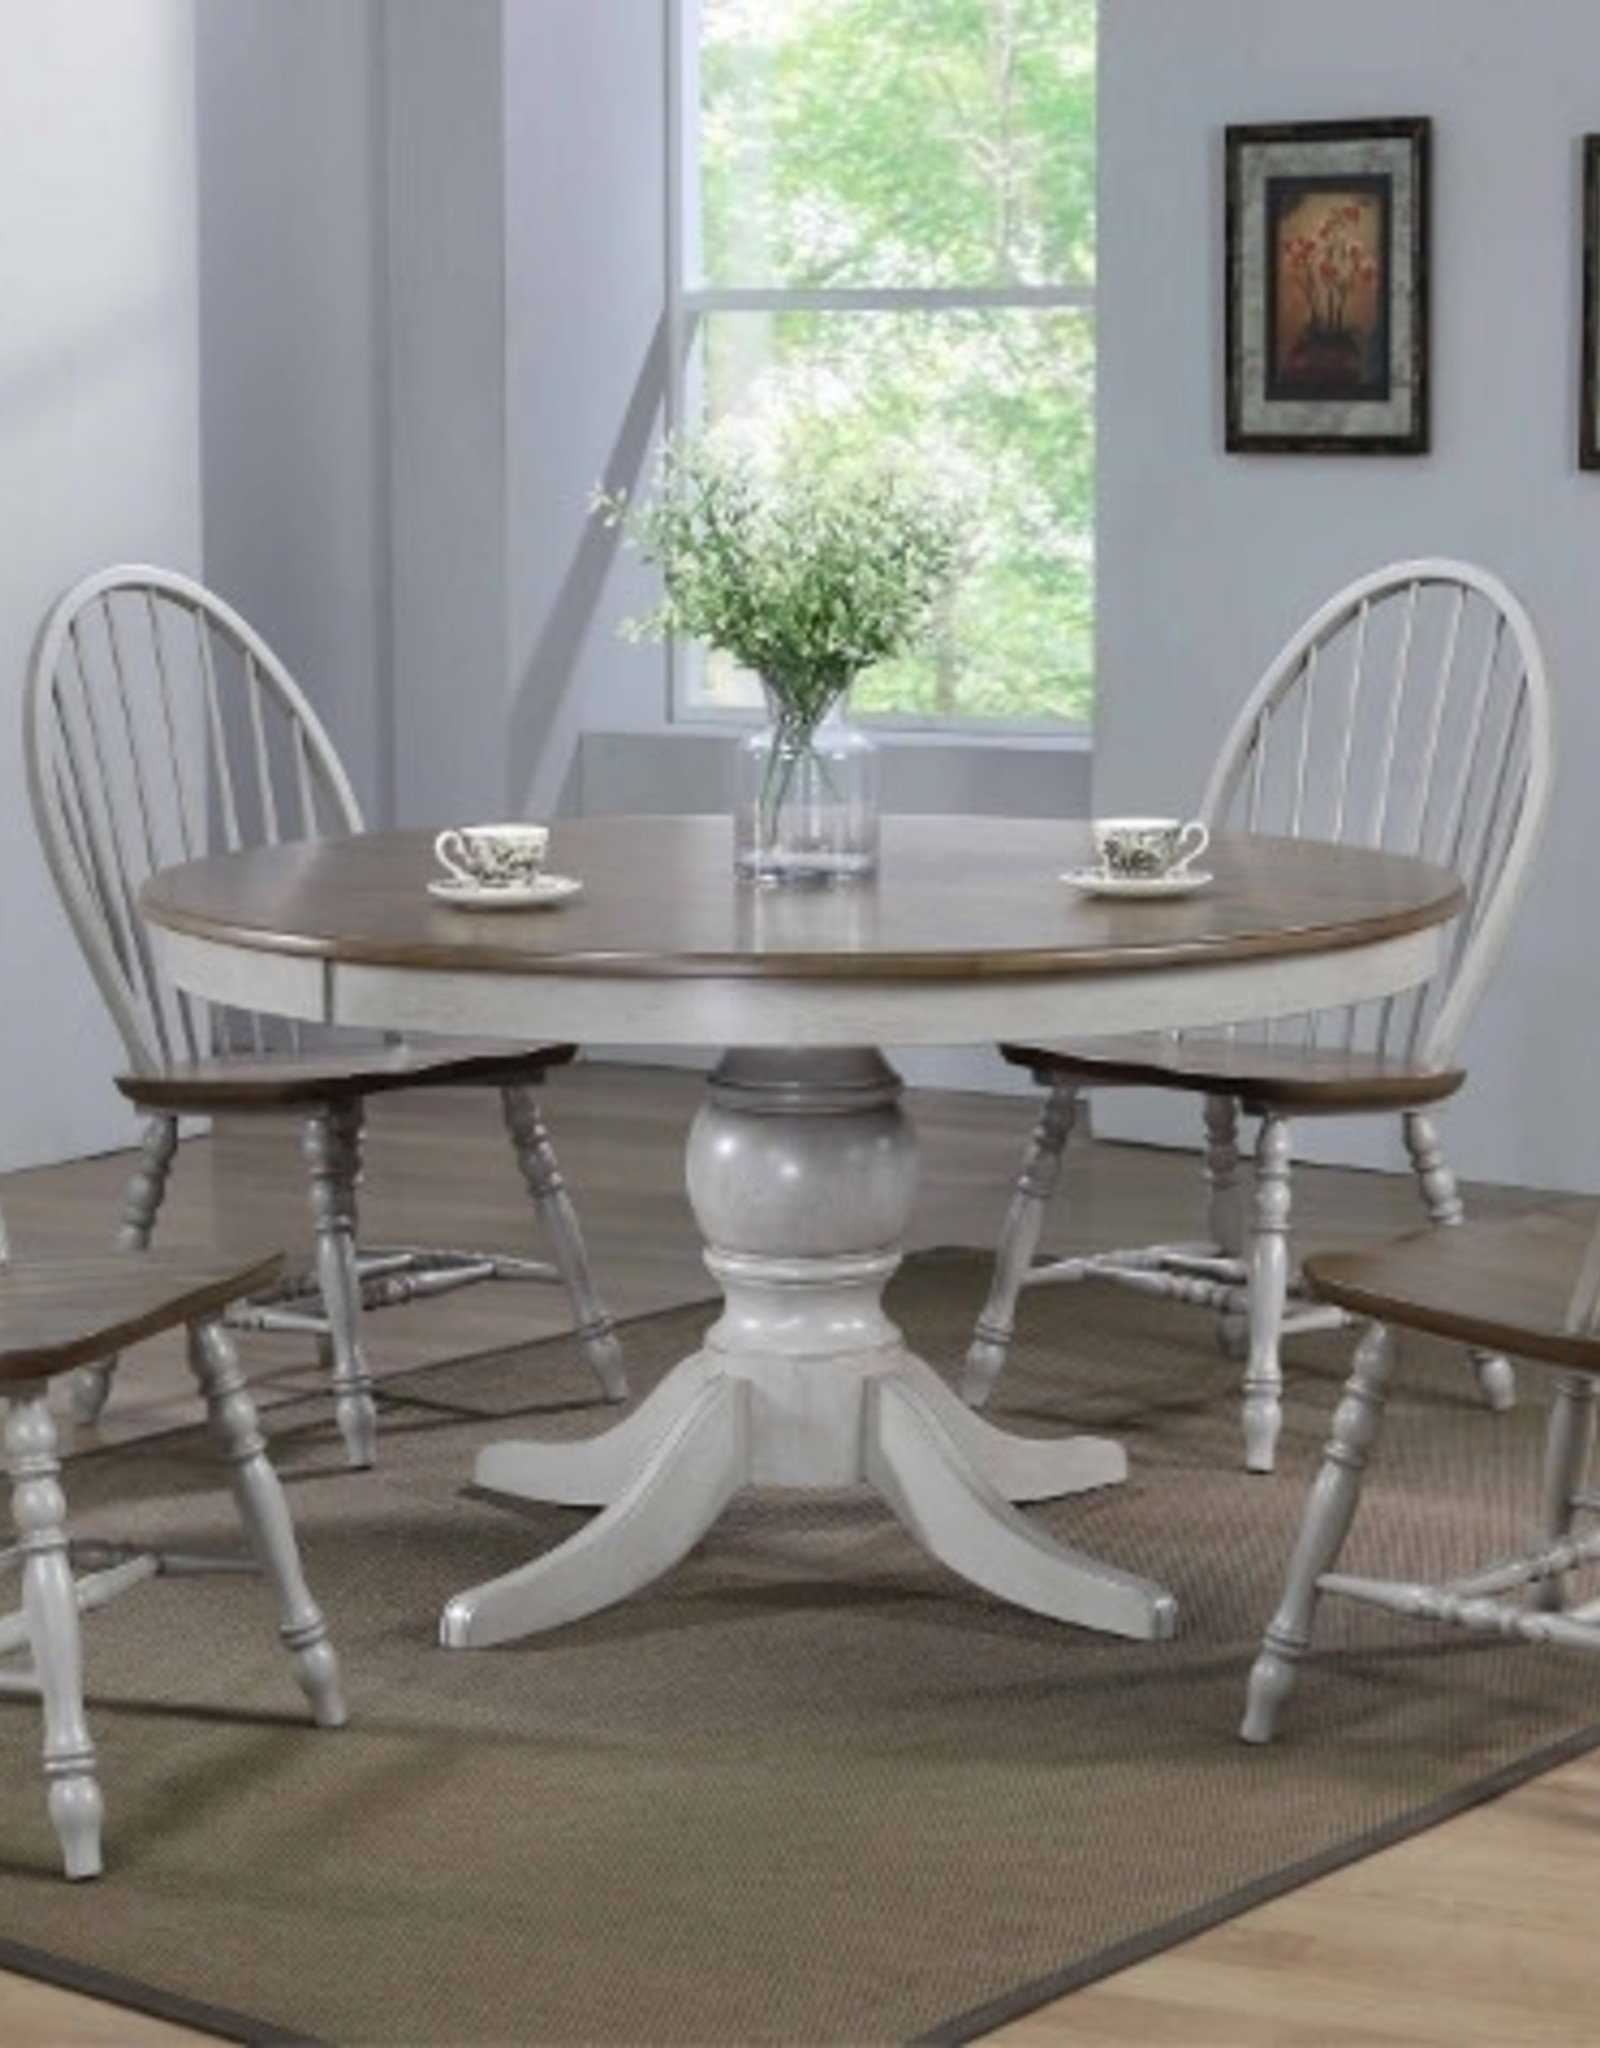 Jack 54 Round Dining Table W 4 Chairs Bargain Box And Bunks